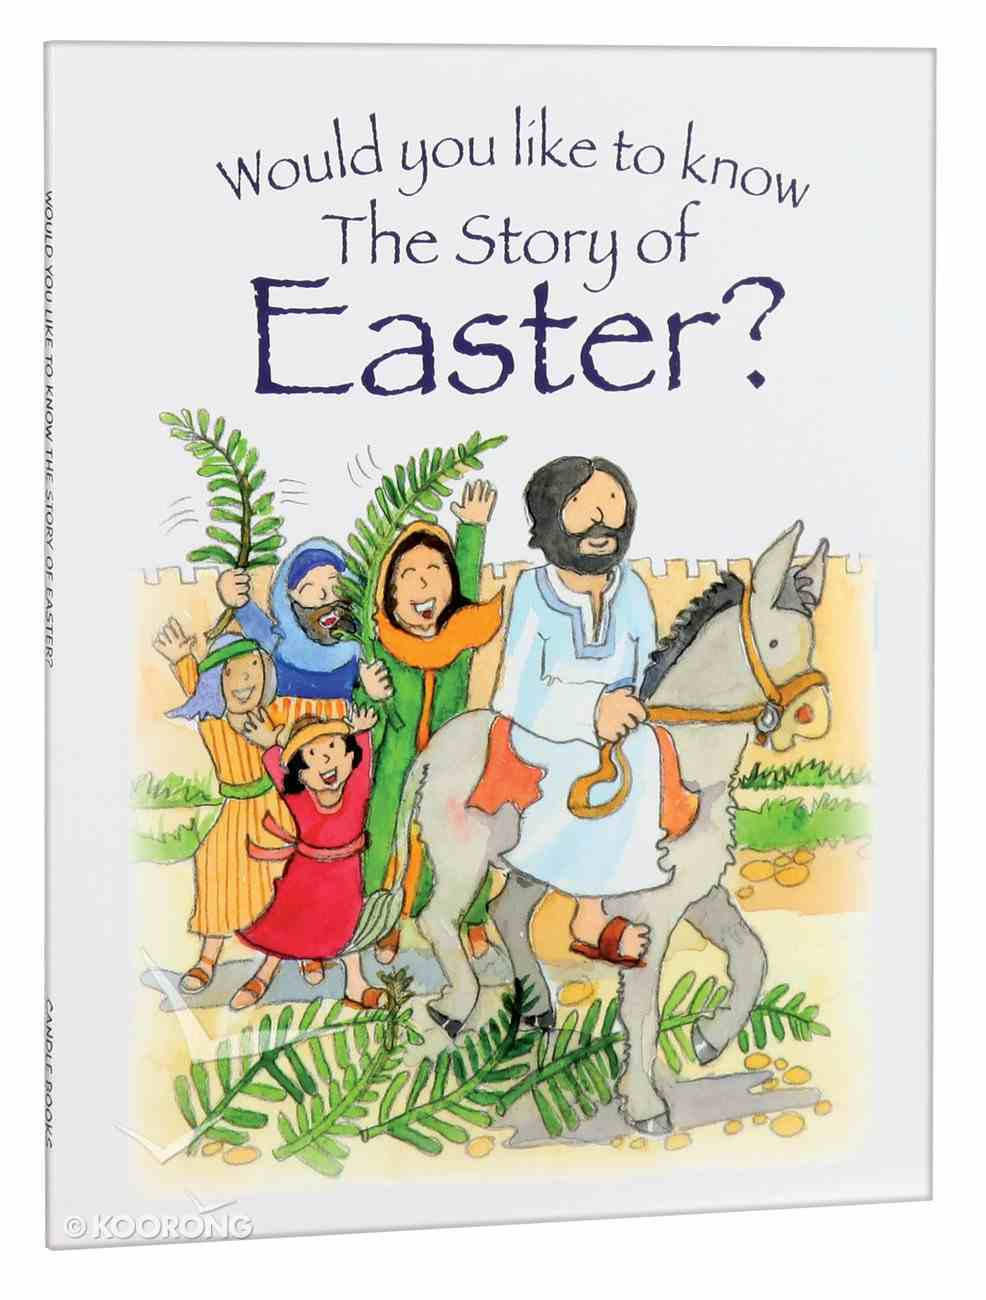 The Story of Easter? (Would You Like To Know... Series) Paperback